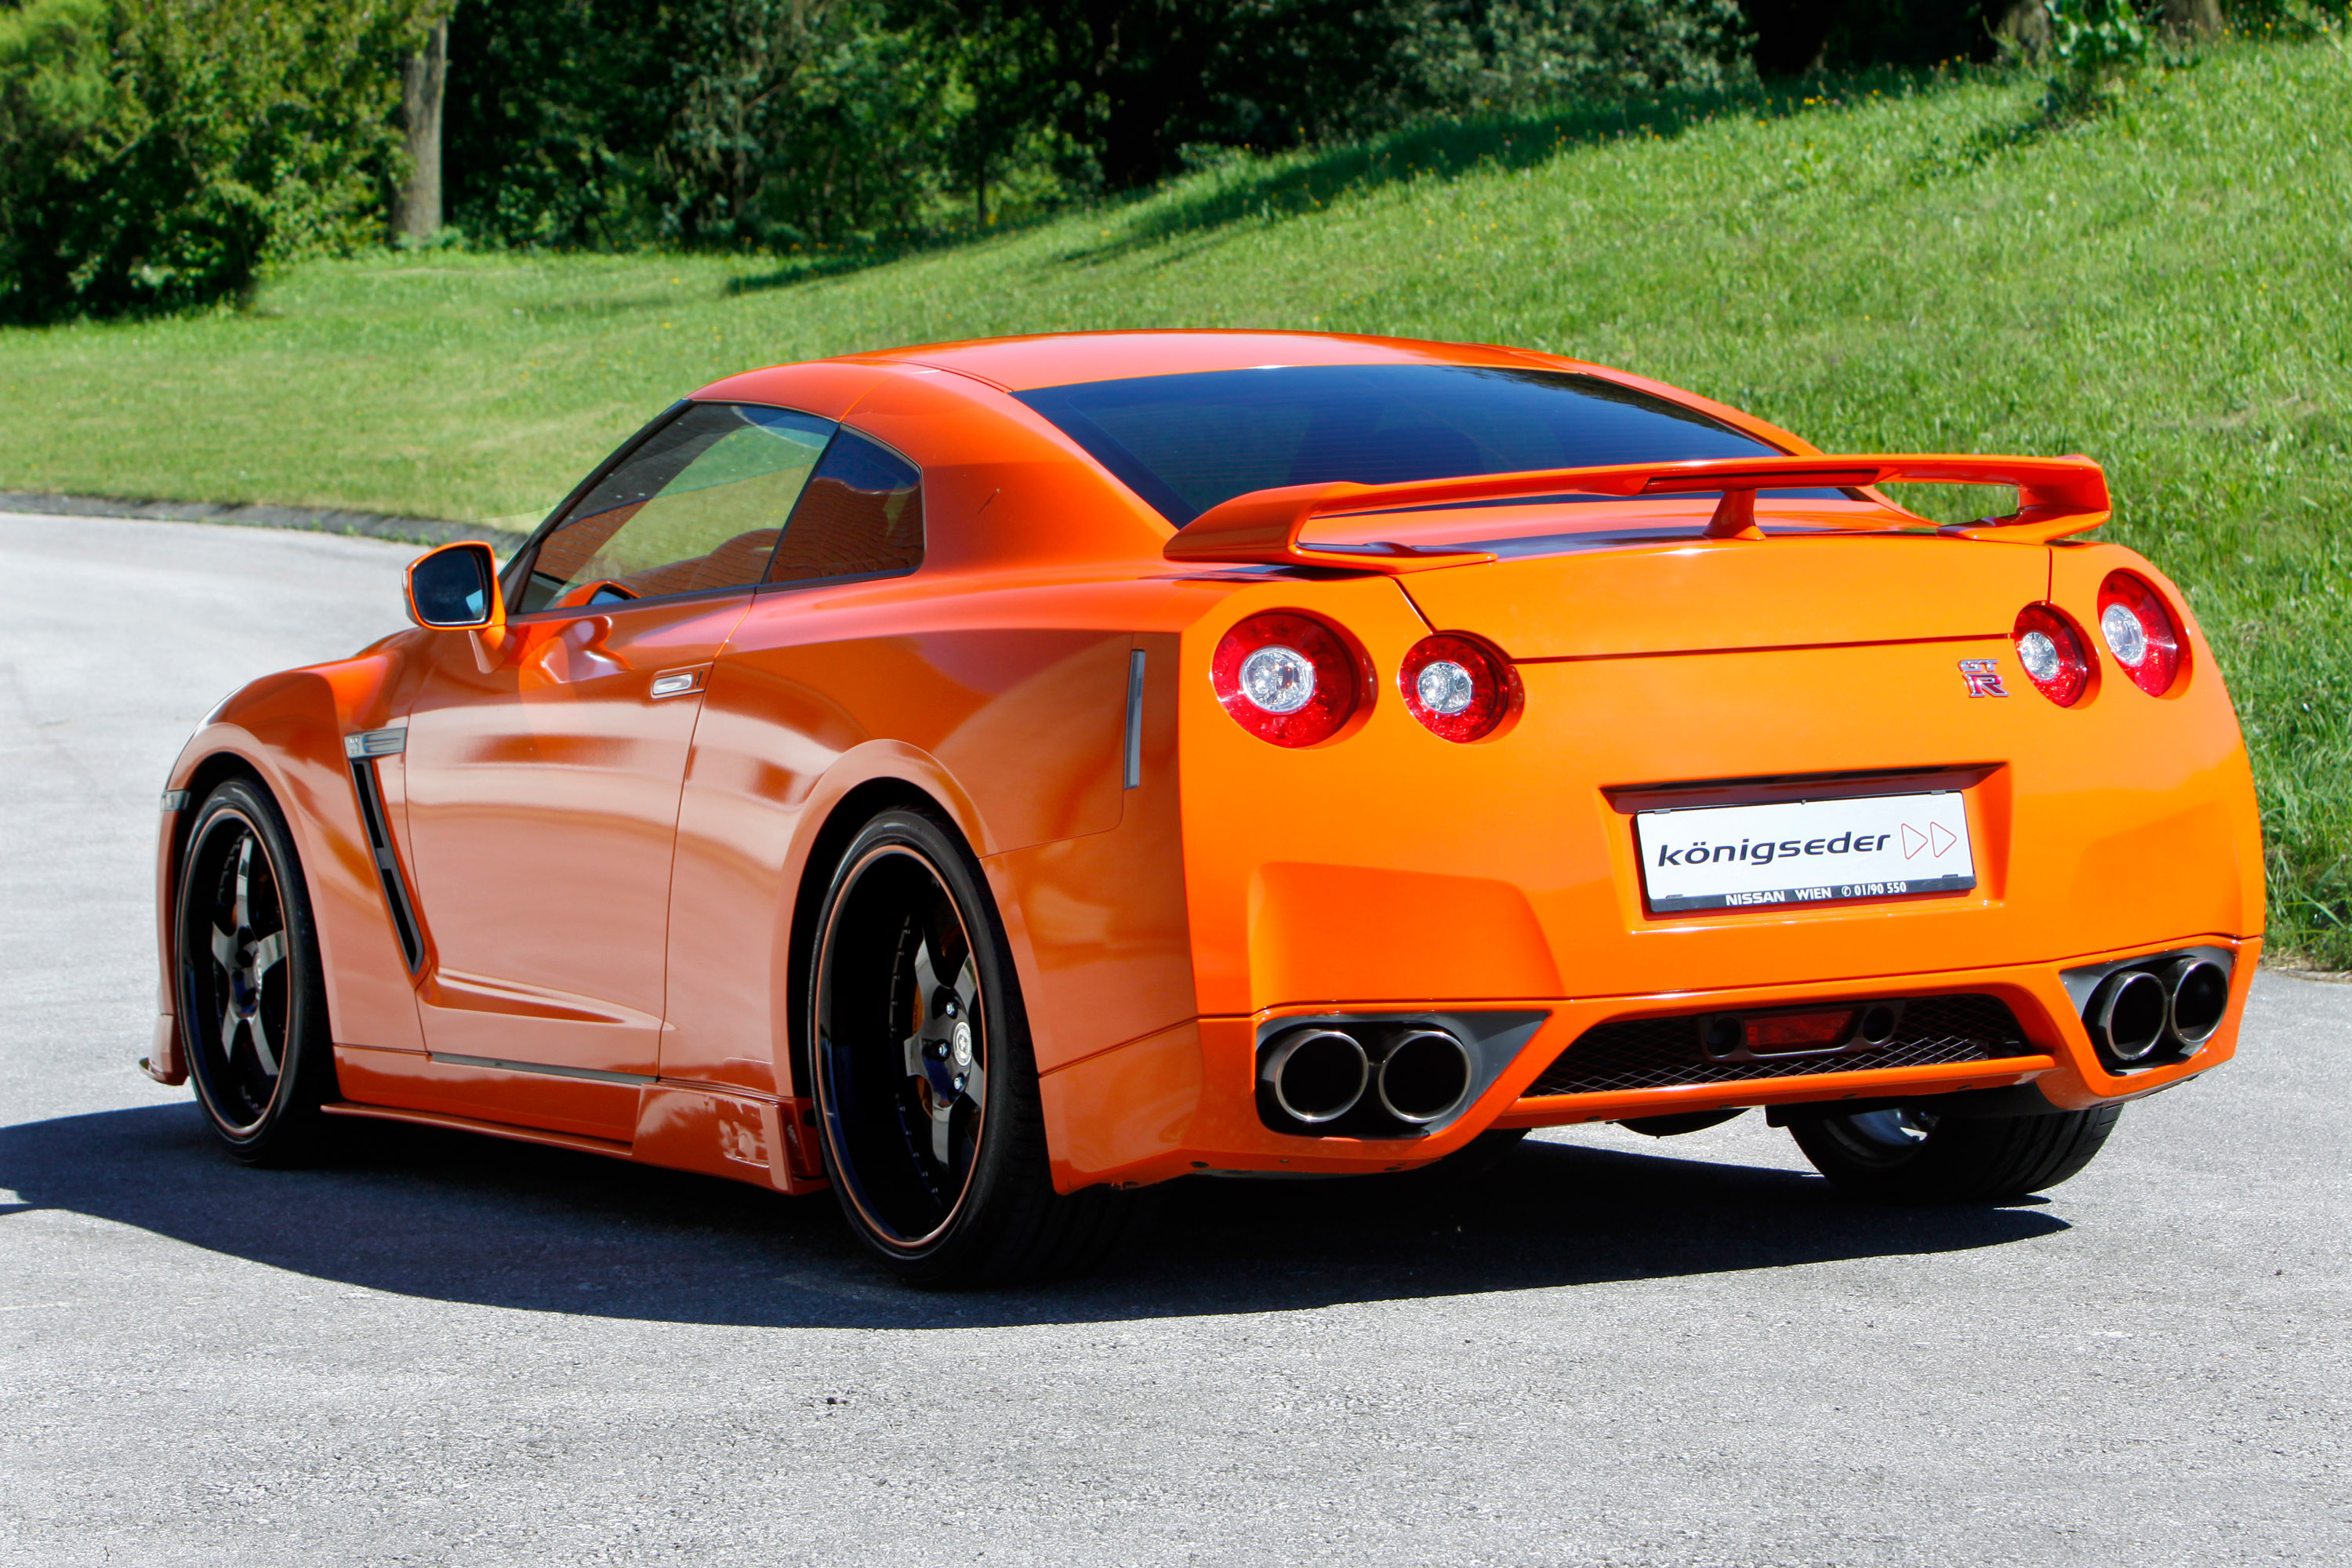 2010 konigseder nissan gtr r35 picture 40689. Black Bedroom Furniture Sets. Home Design Ideas